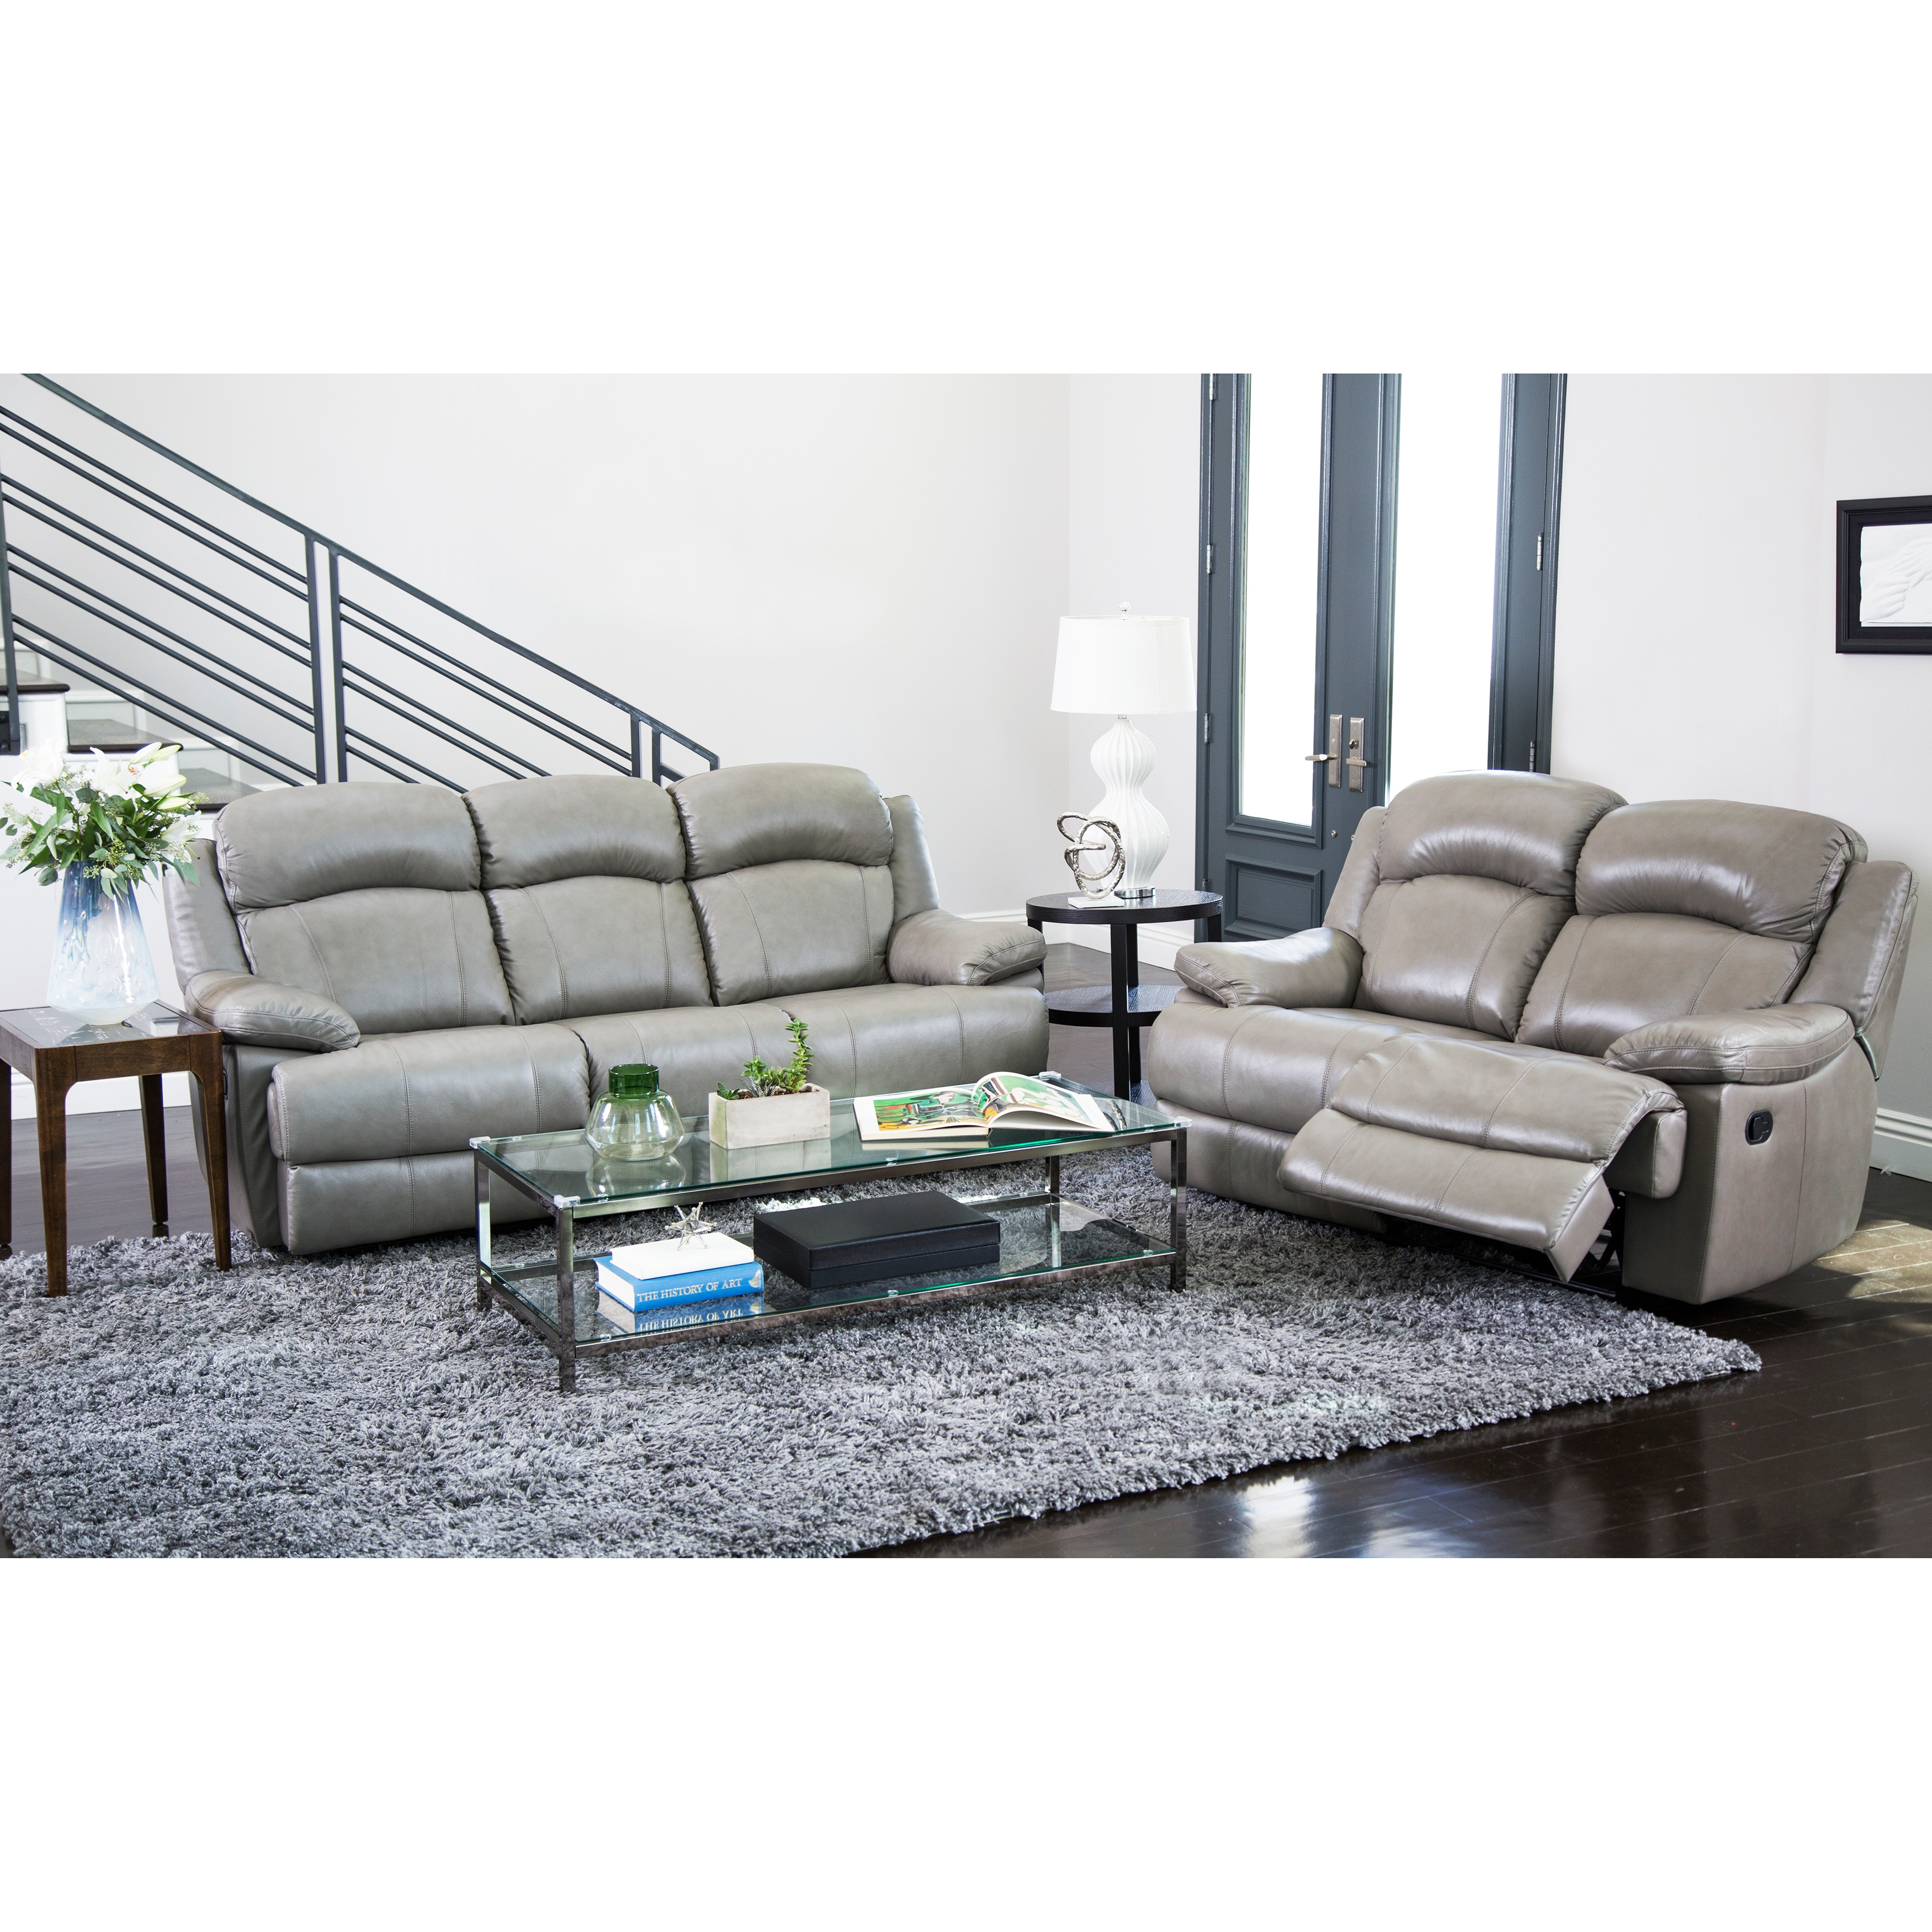 Abbyson Clarence Top Grain Leather Reclining 2 Piece Living Room Set Free Shipping Today 16933839